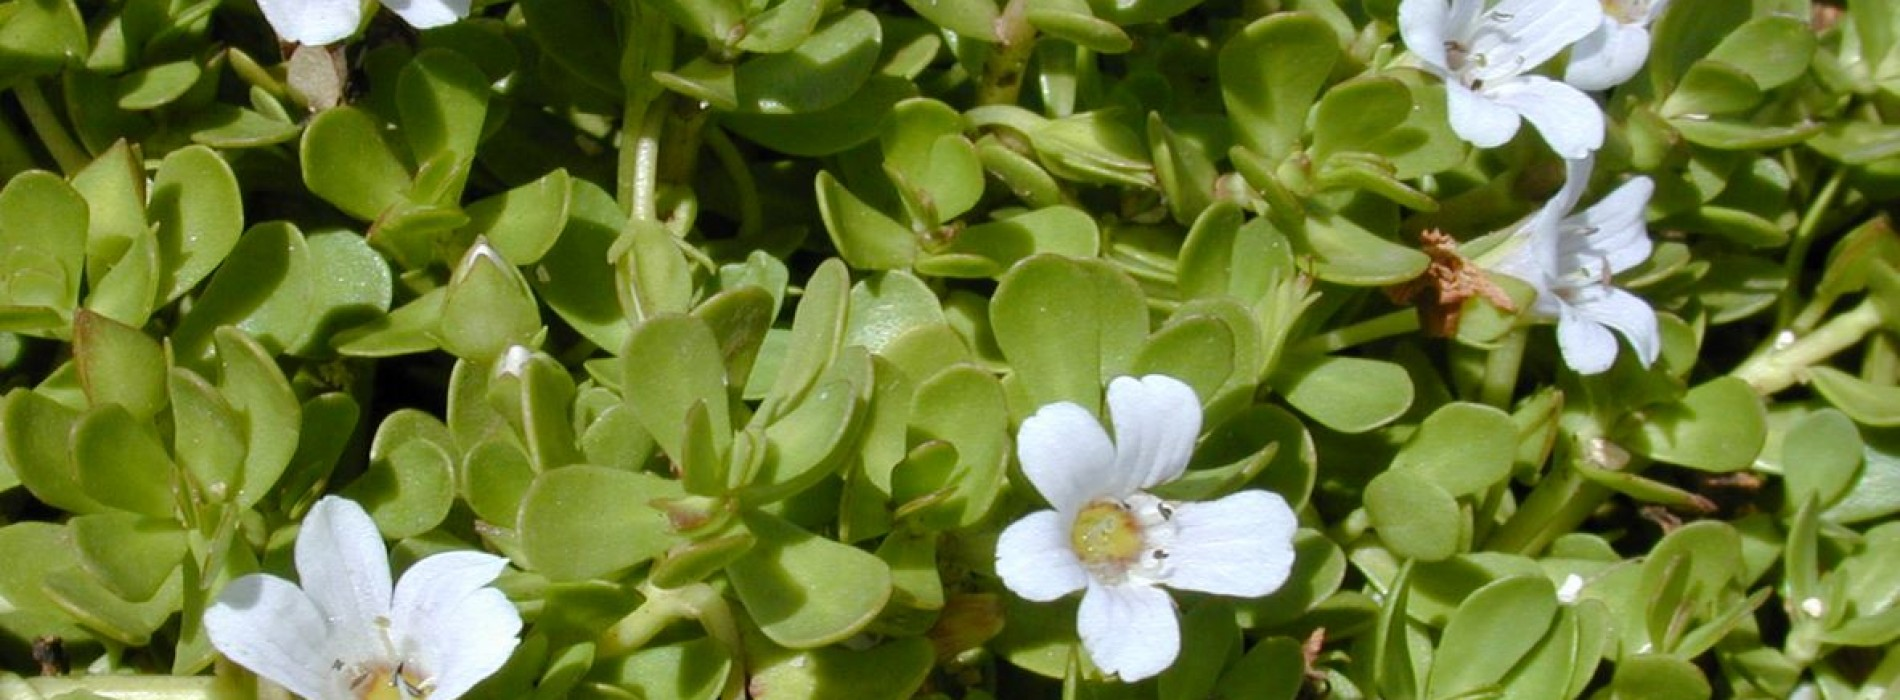 Ashwagandha plant – Miracle medication from the Indian Sub continent